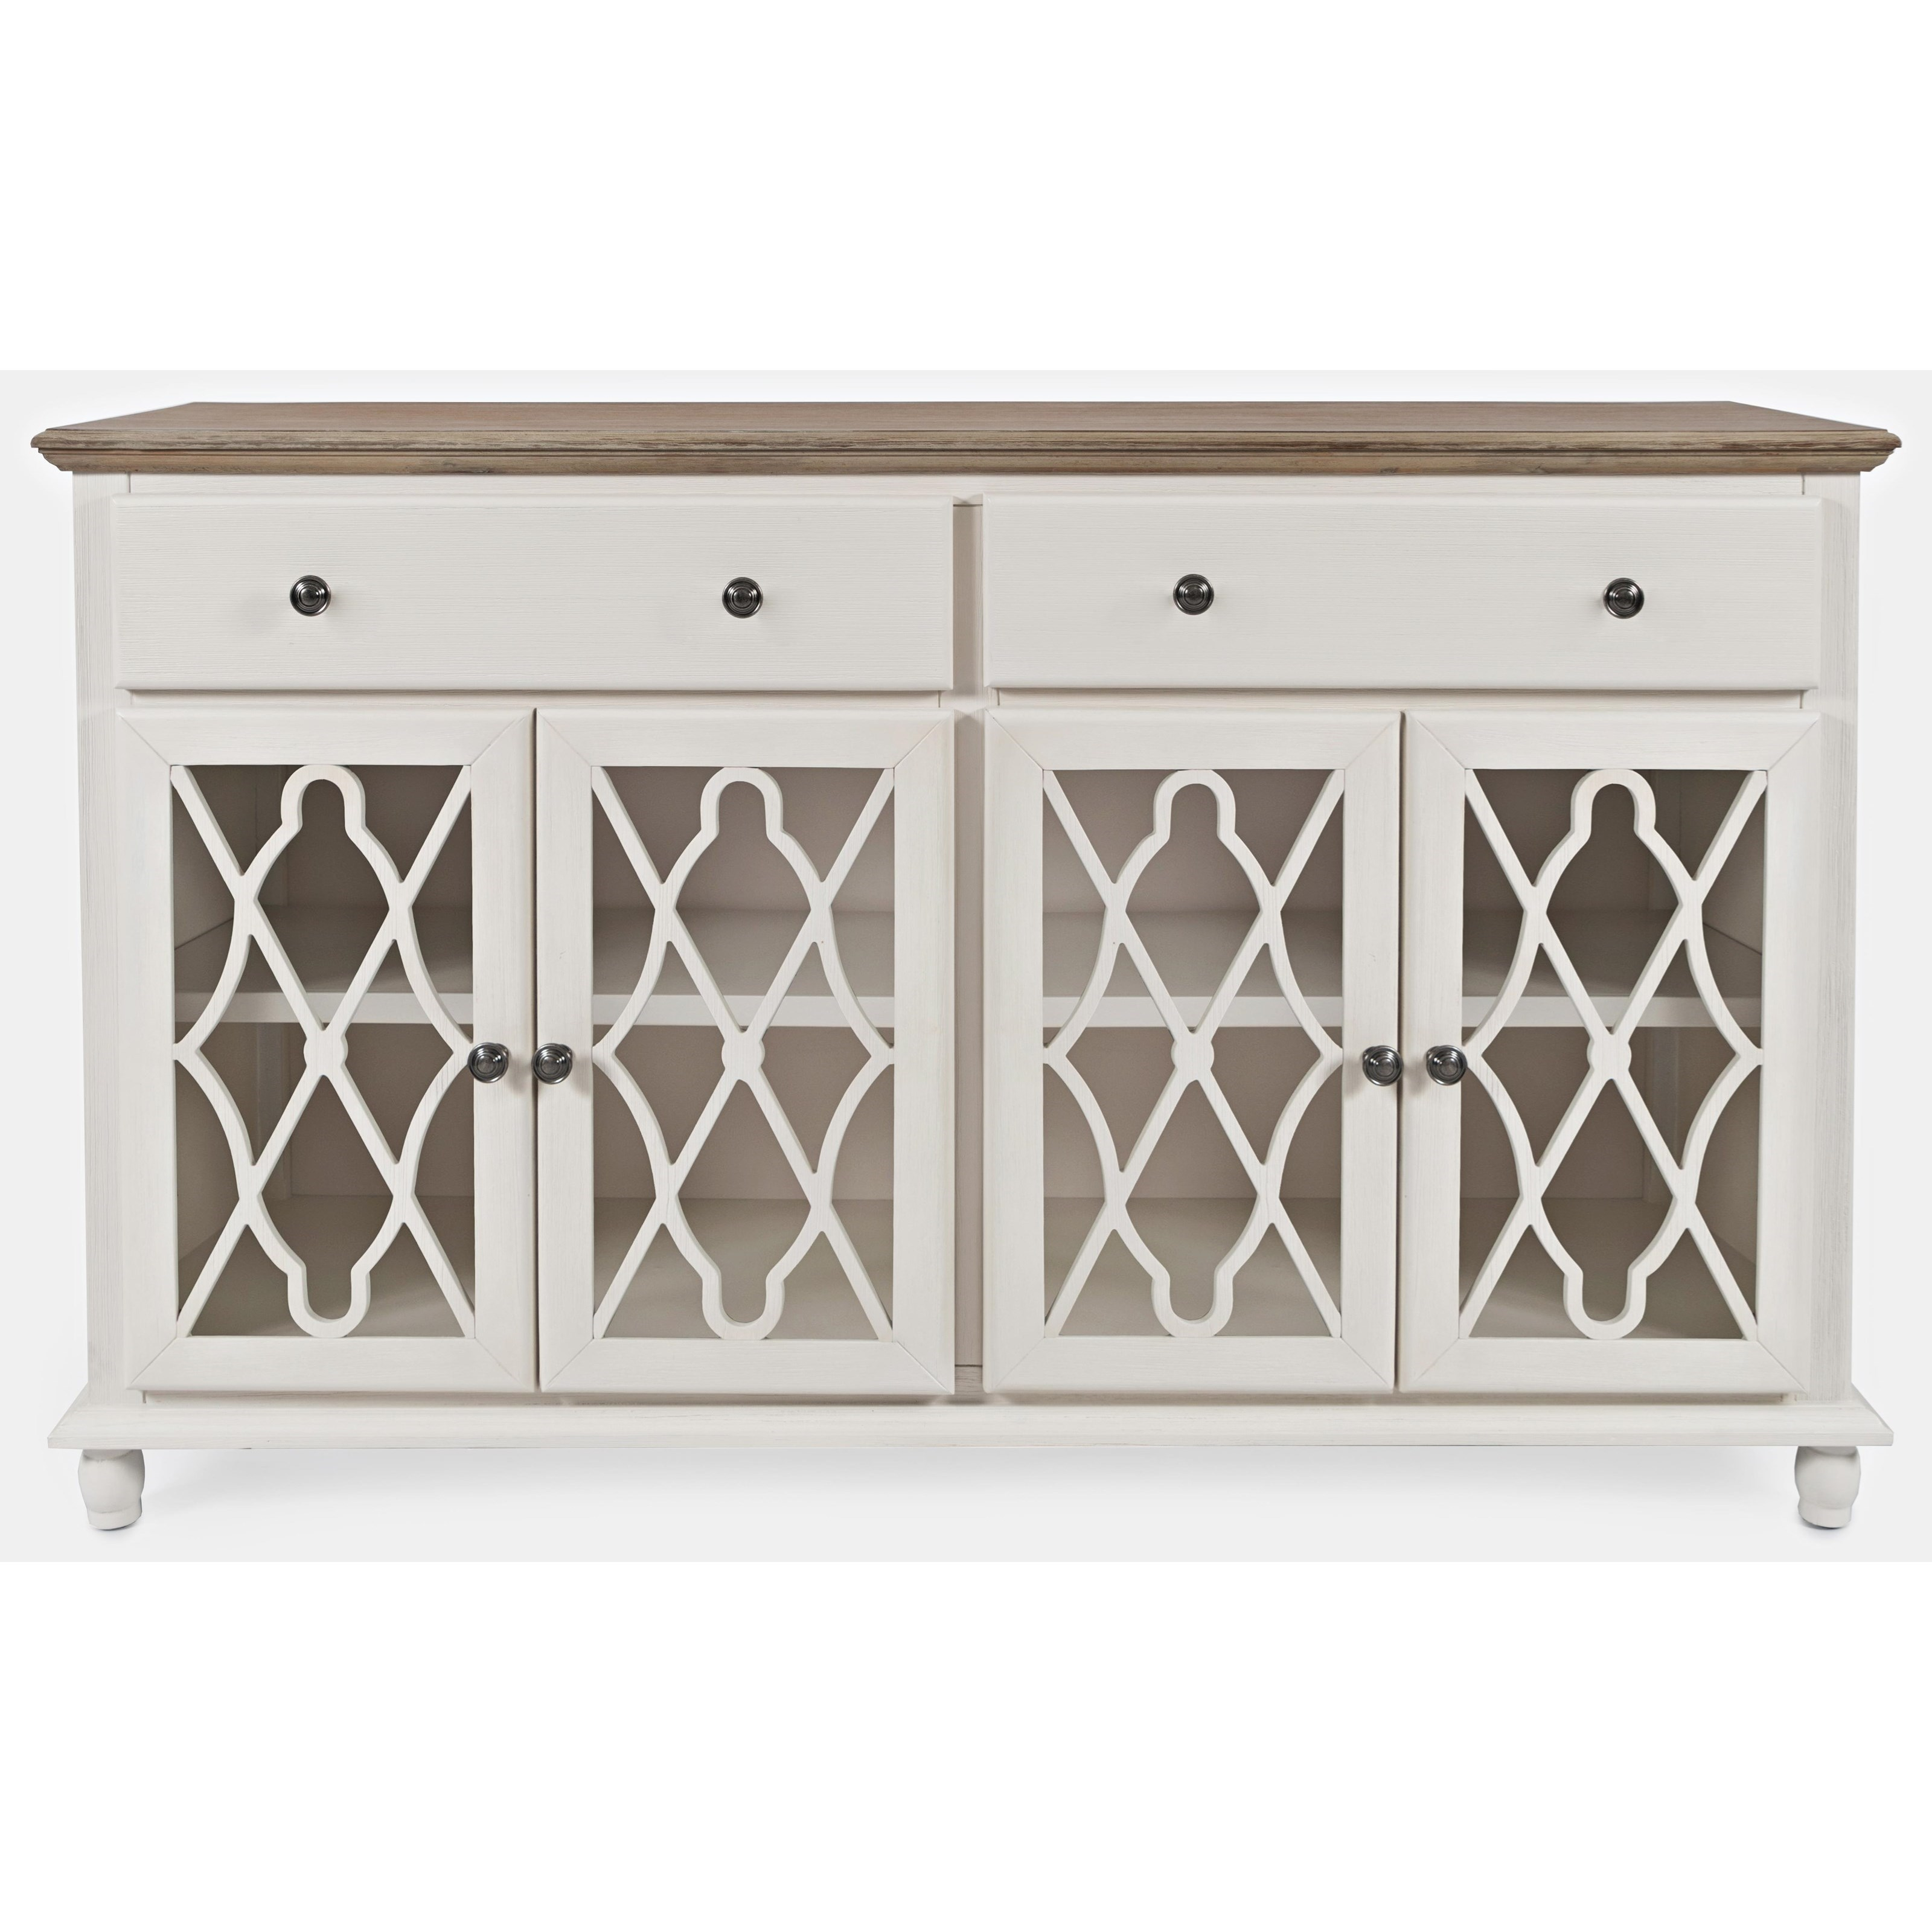 Aurora Hills 4-Door Accent Chest by Jo Furniture Co. at Ruby Gordon Home